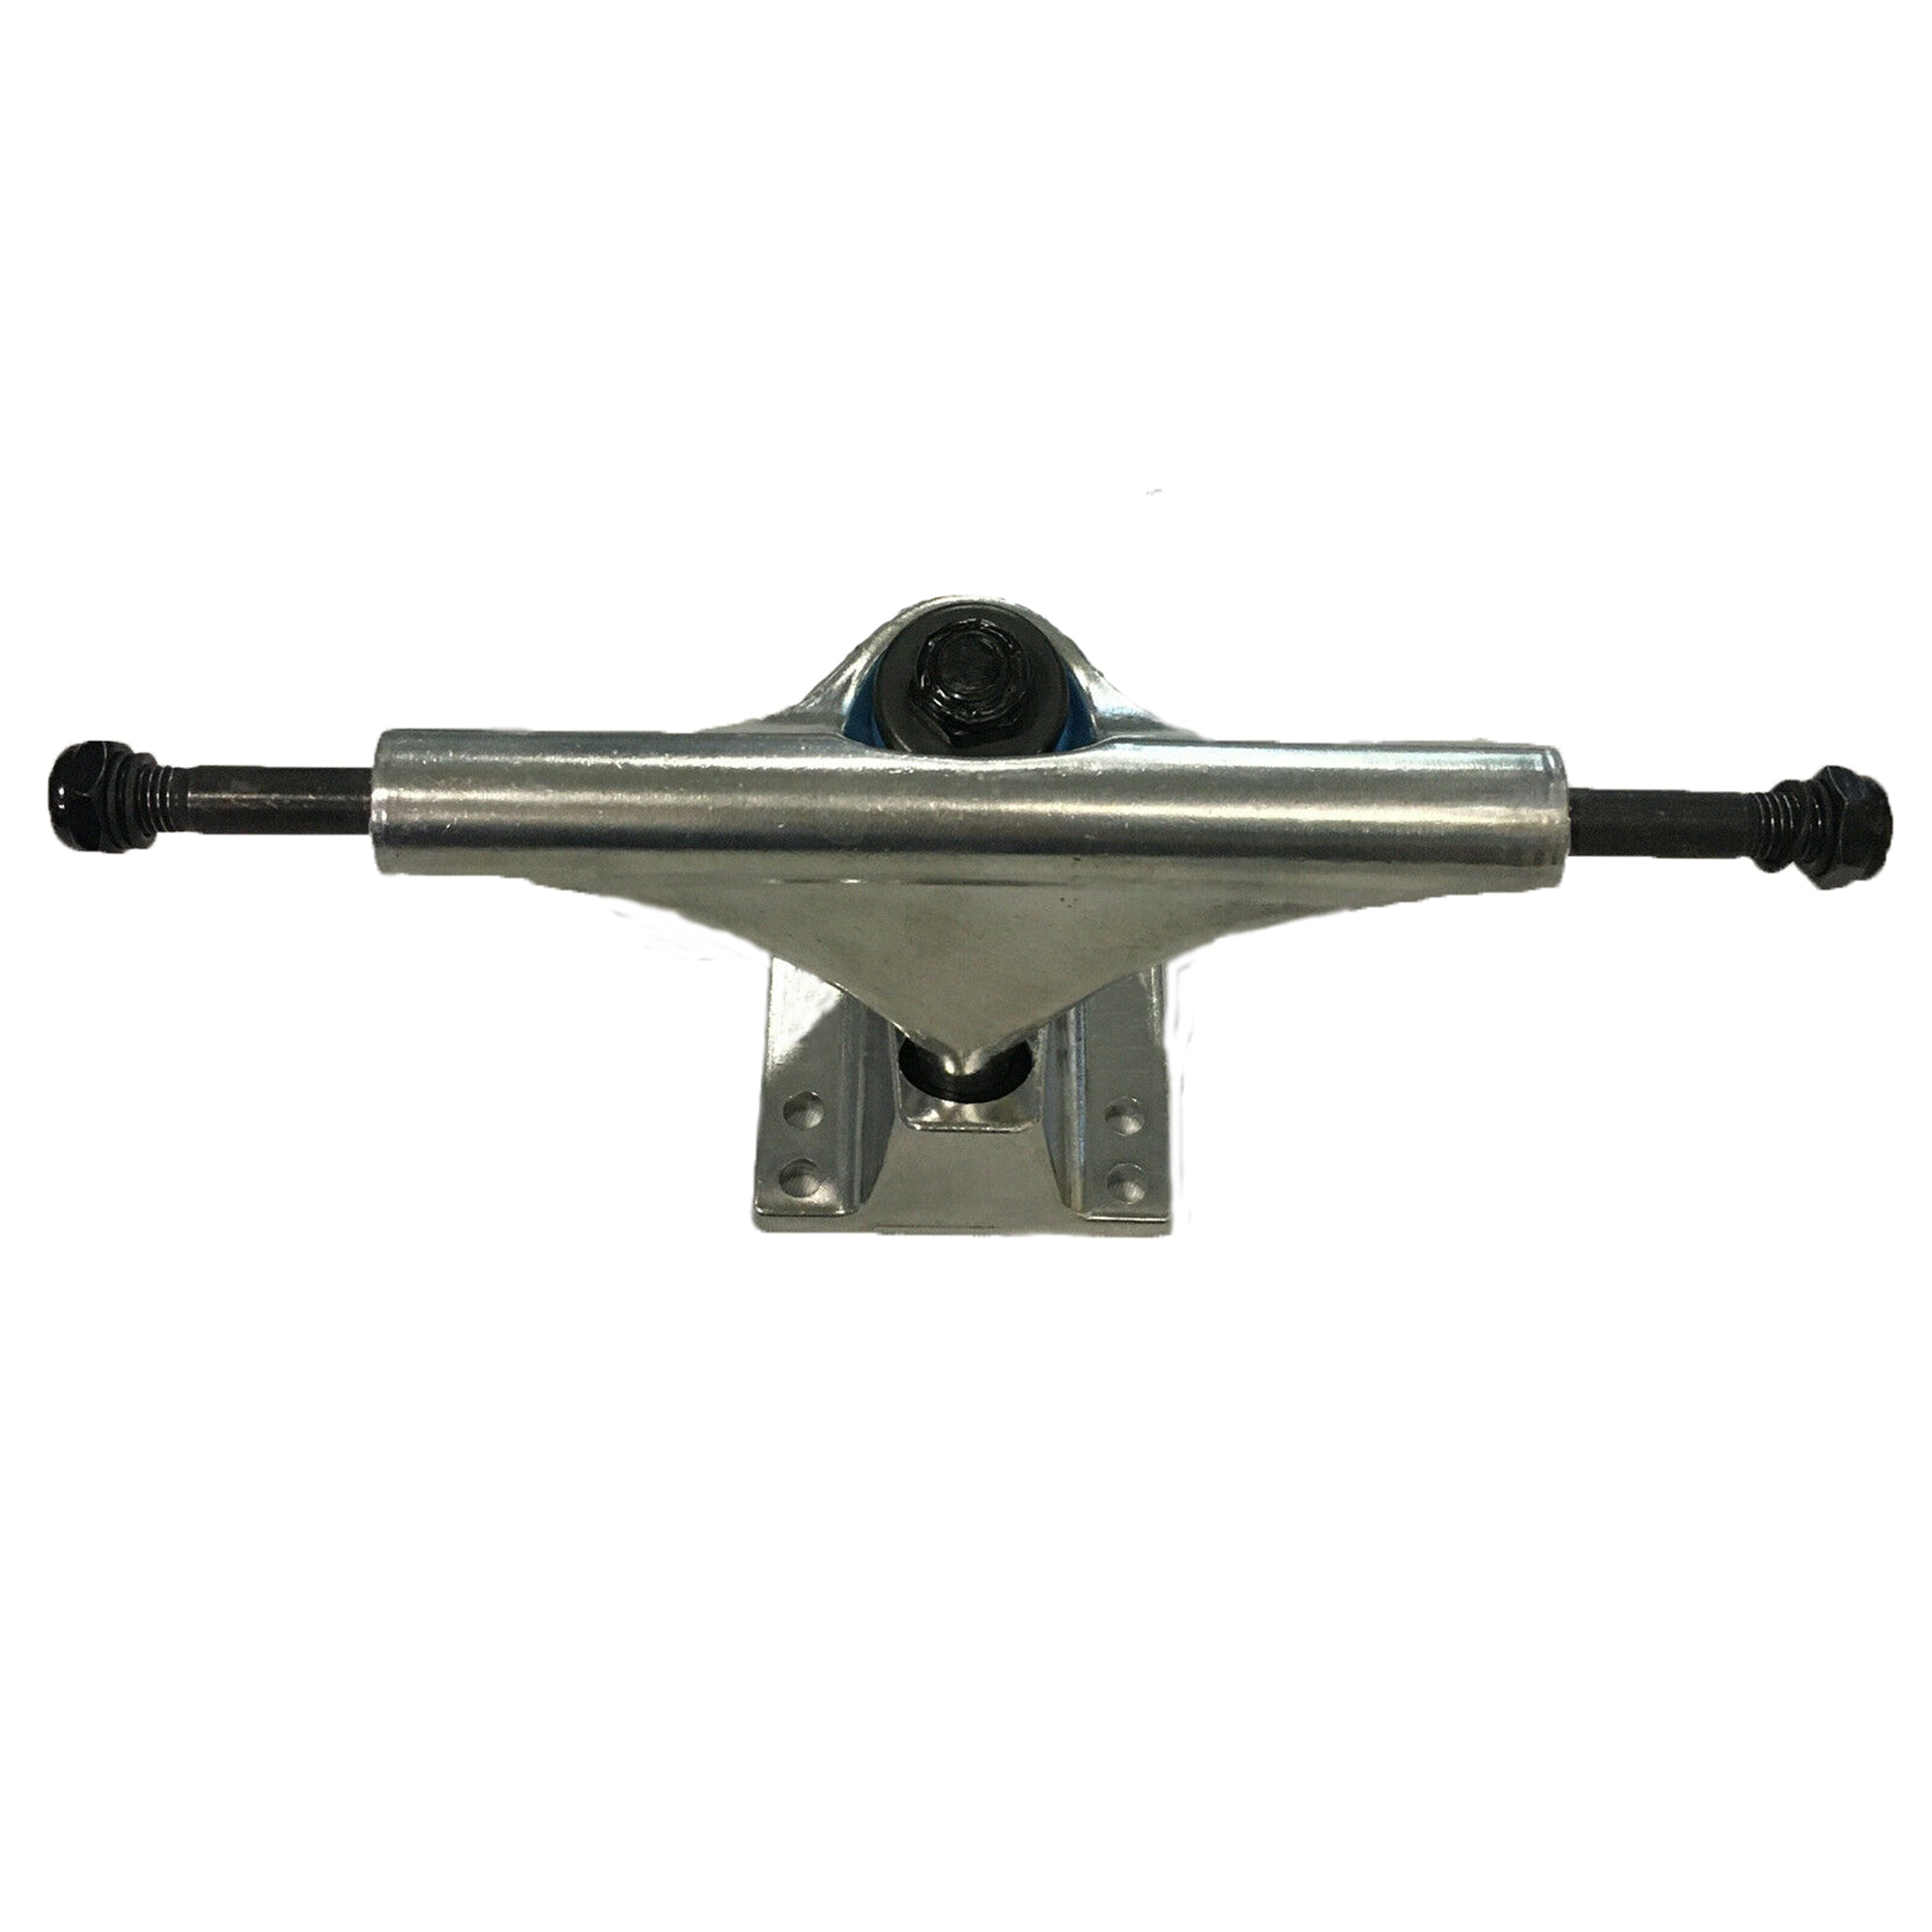 Litezpeed 5.25 Blank Polished Metal Trucks